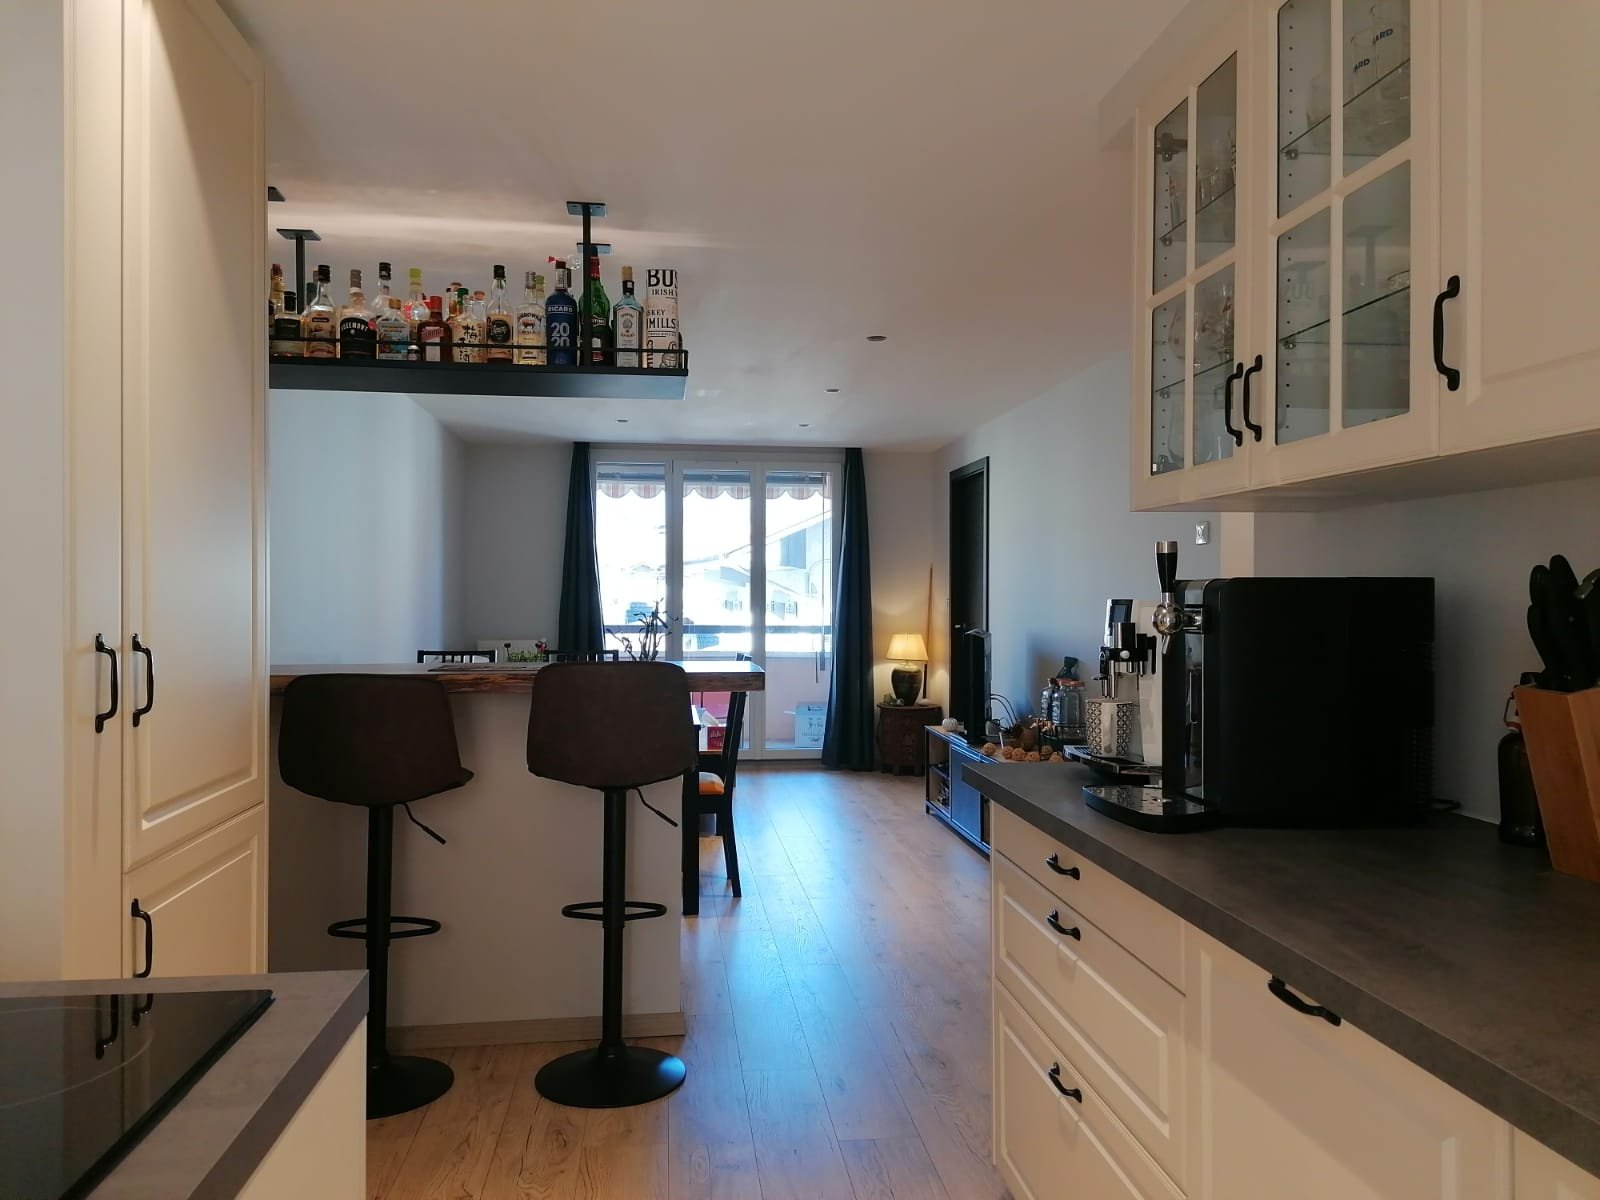 AIX-LES-BAINS apartment 75 M² RENOVATED T3 CROSSING